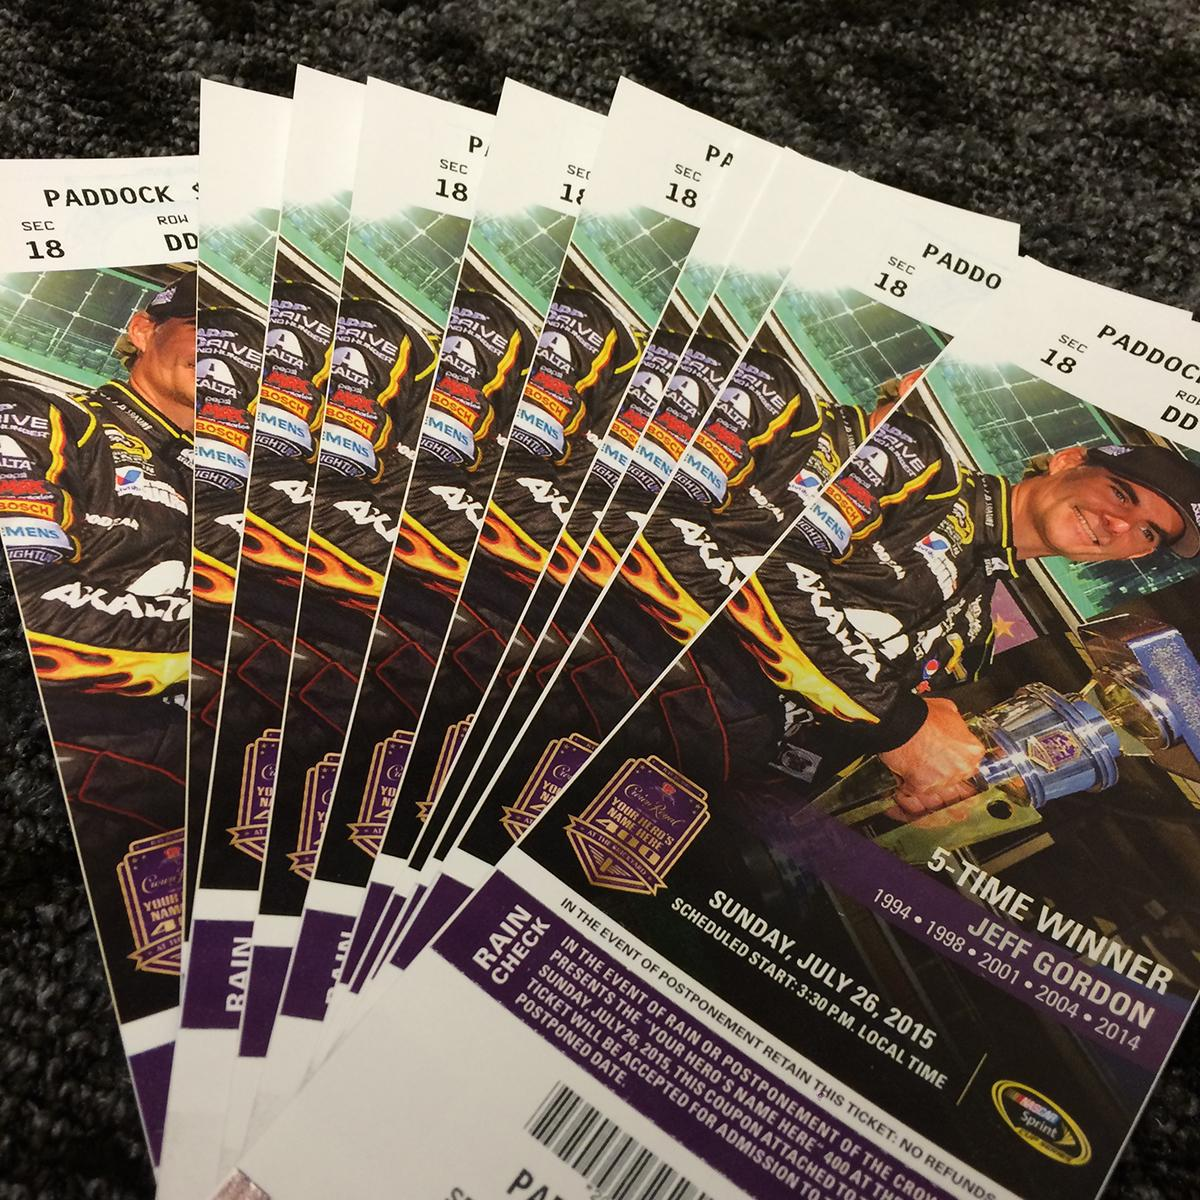 Retweet and follow me to win a pair of tickets to the #Brickyard400 at @IMS. Winner picked in 4 hrs. #WinItWednesday